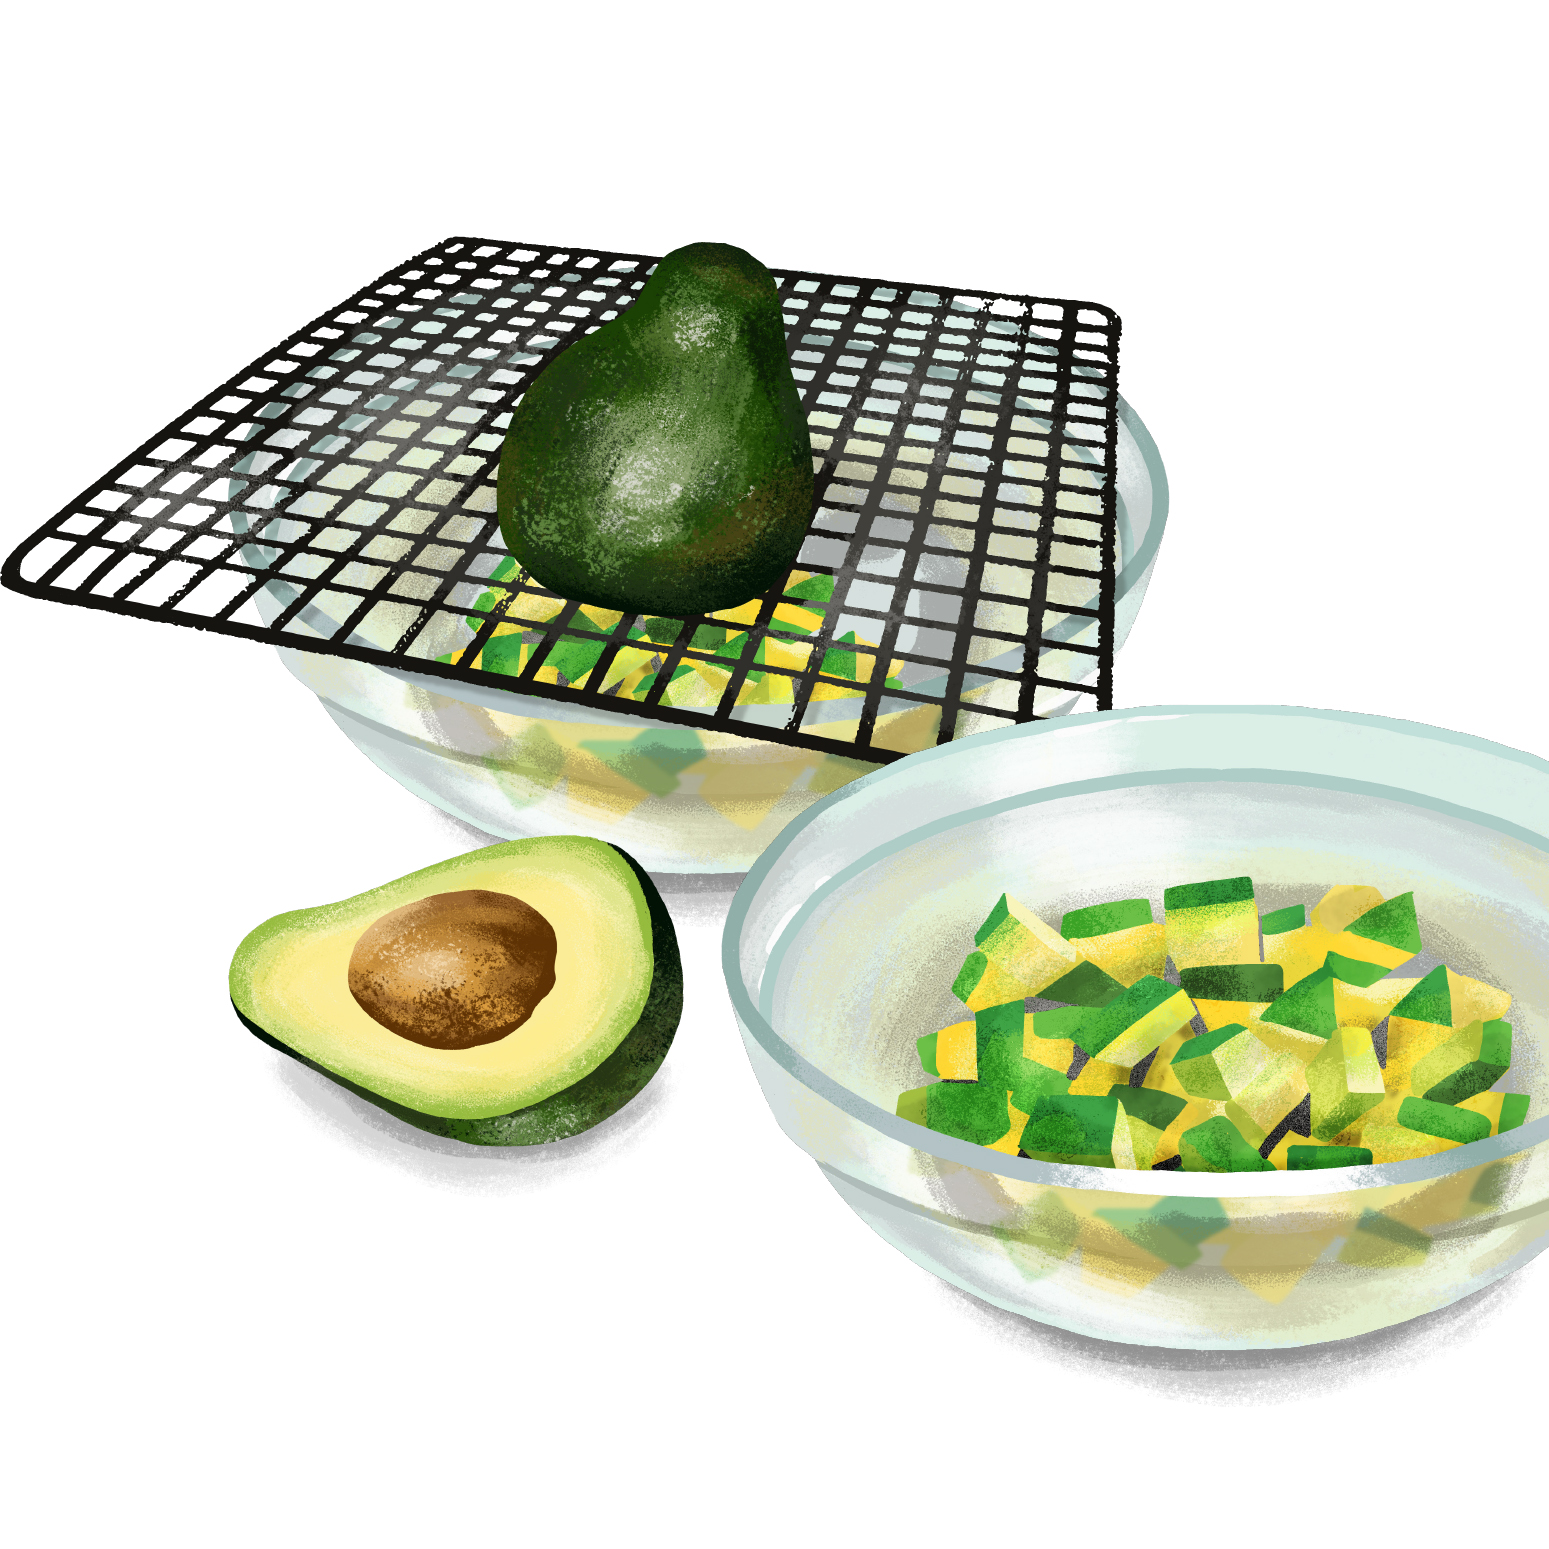 An Avocado Hack You Have to Try